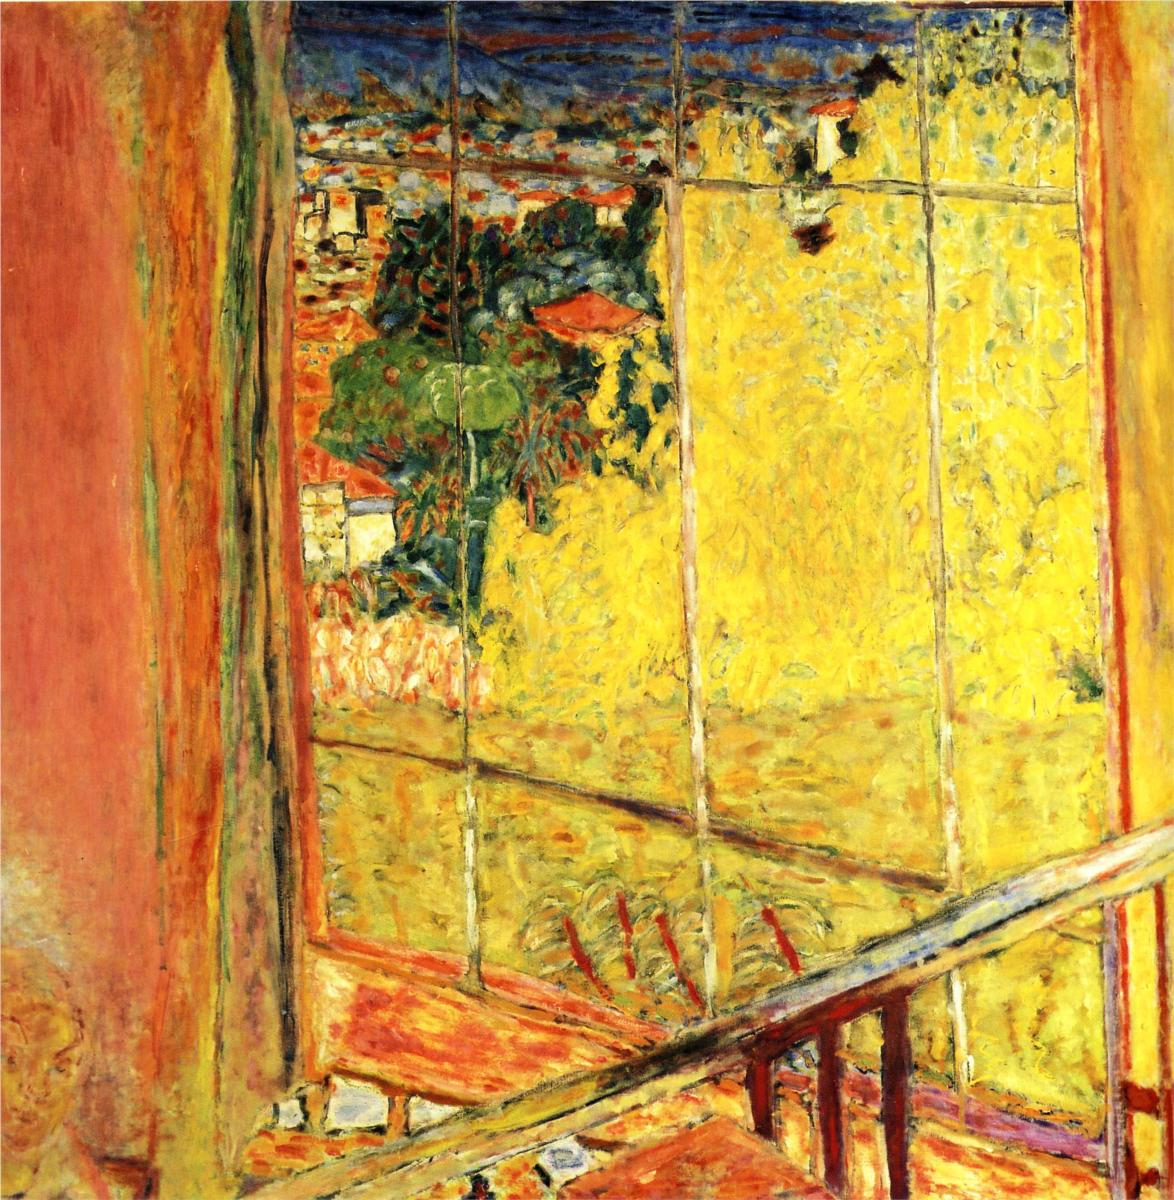 the-workshop-with-mimosa-1935-by-Pierre-Bonnard